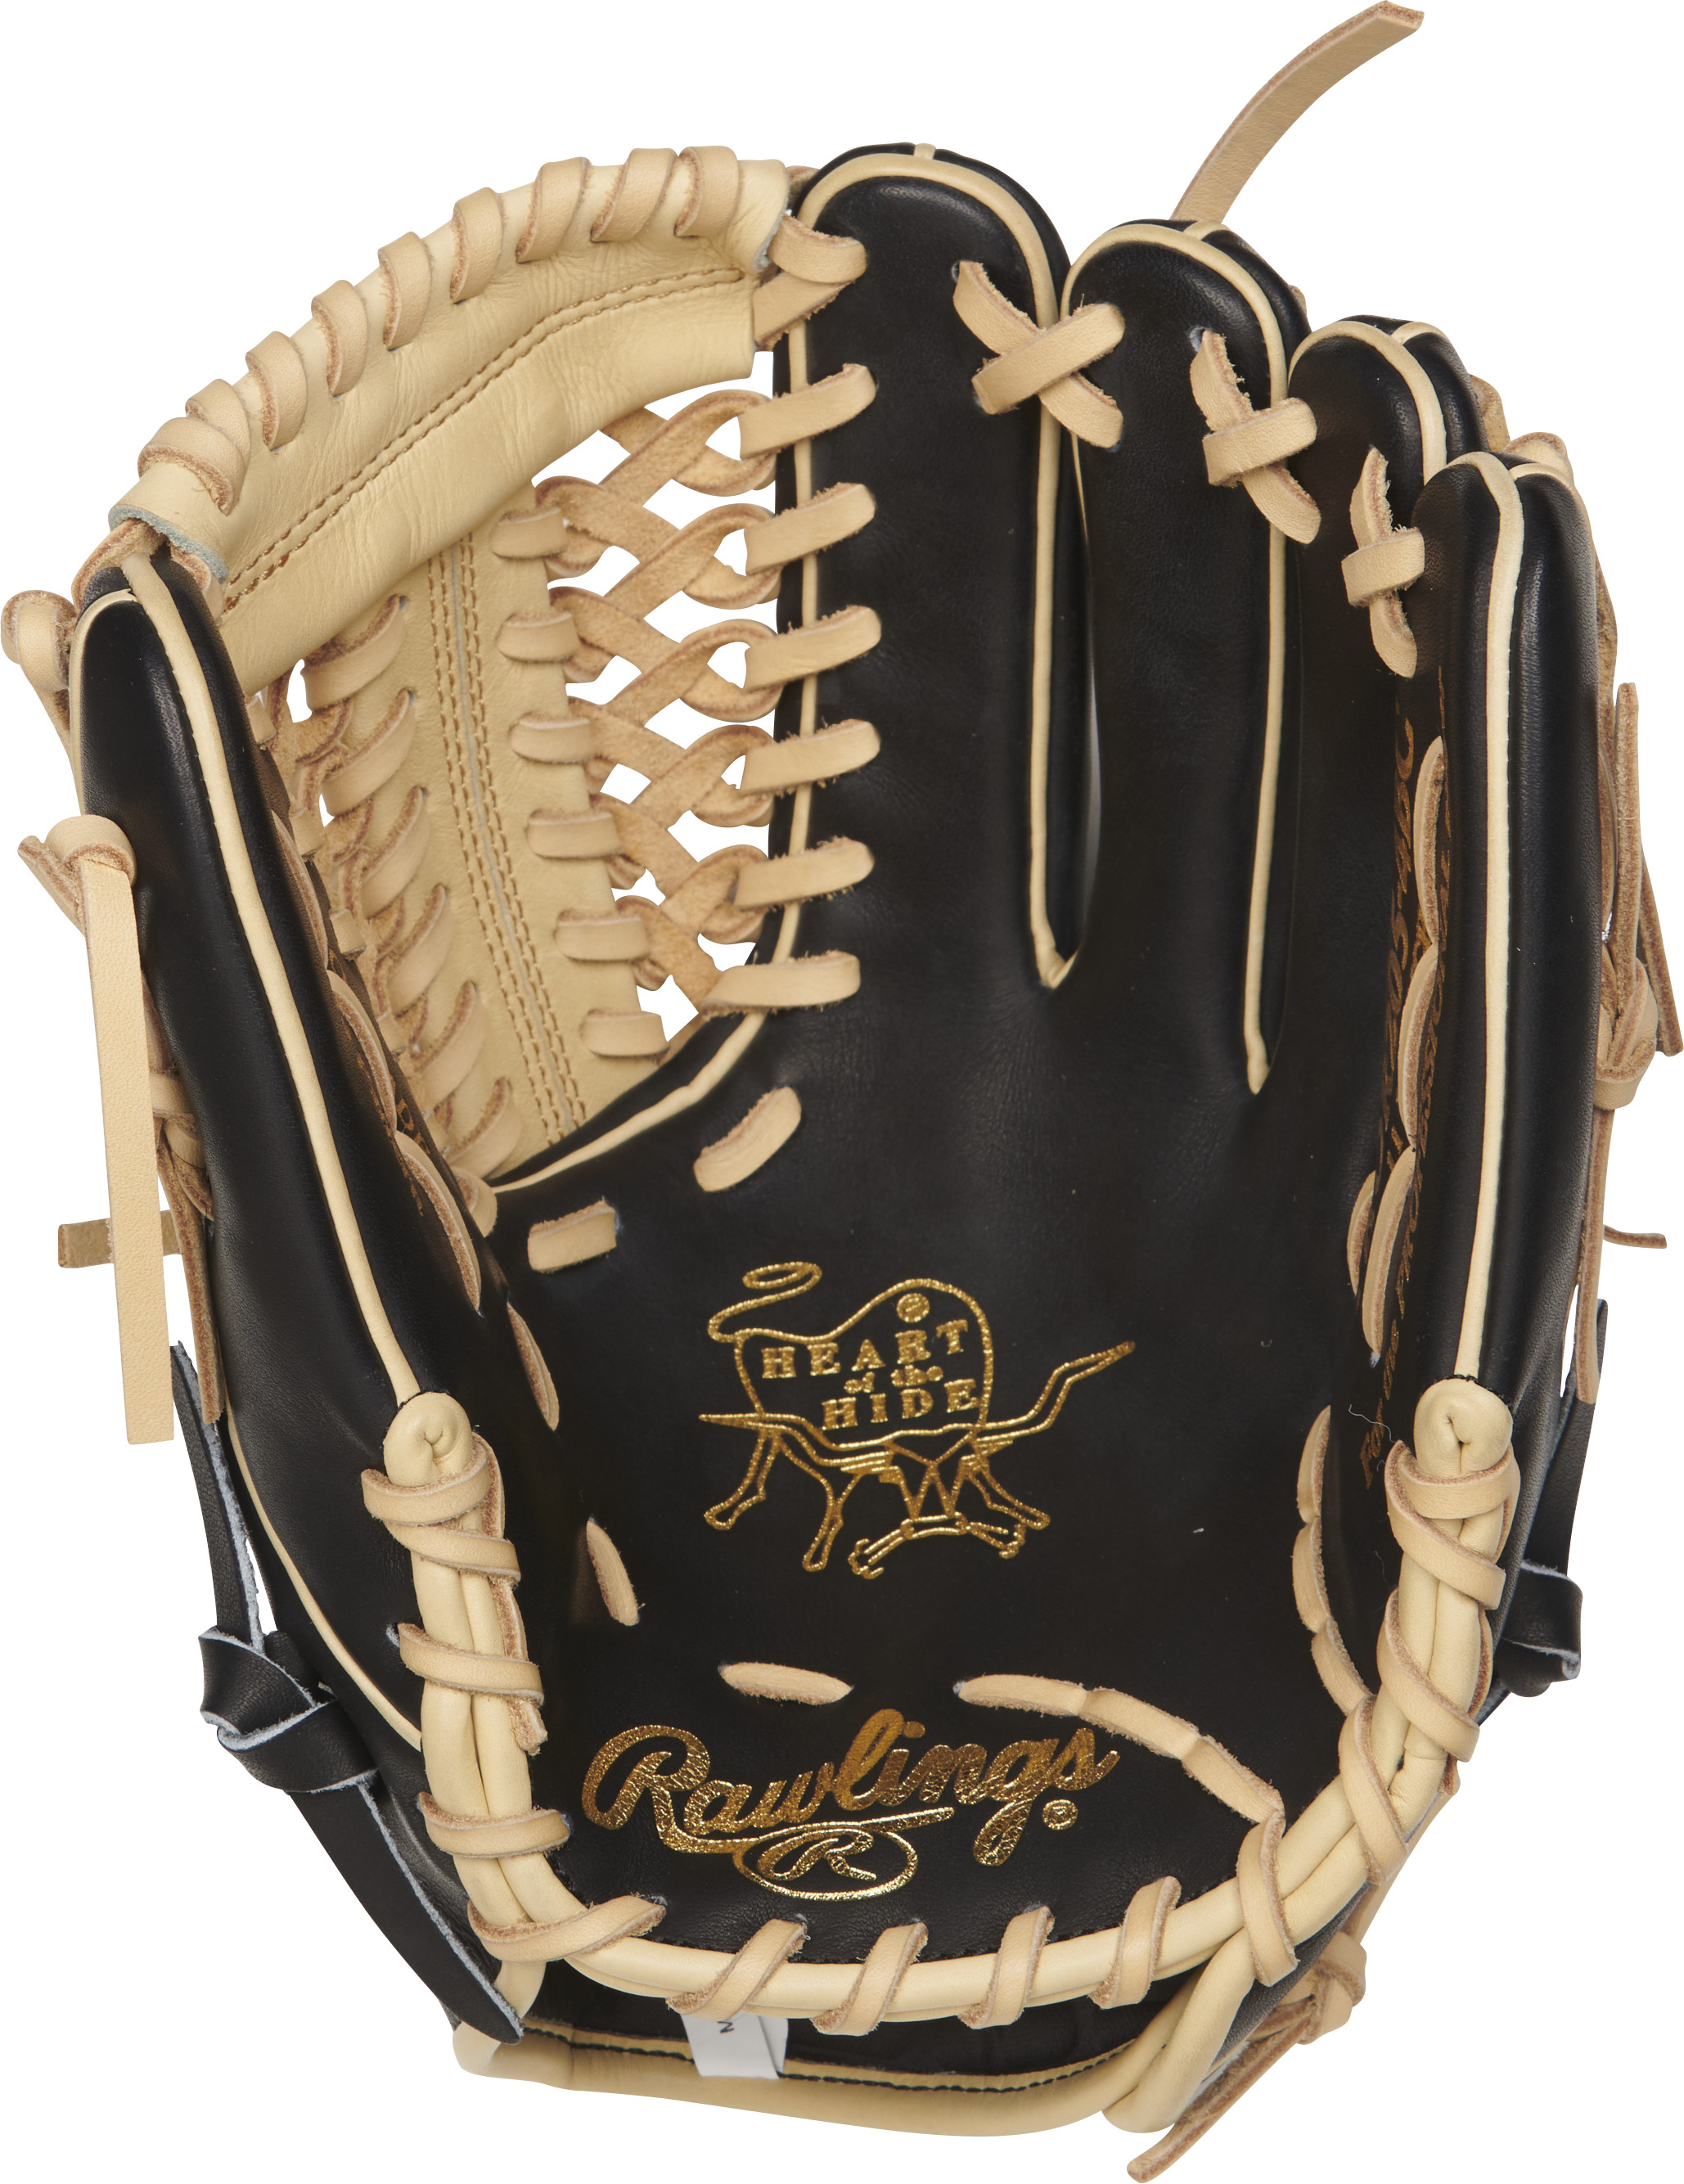 http://www.bestbatdeals.com/images/gloves/rawlings/PROR205-4BC-1.jpg